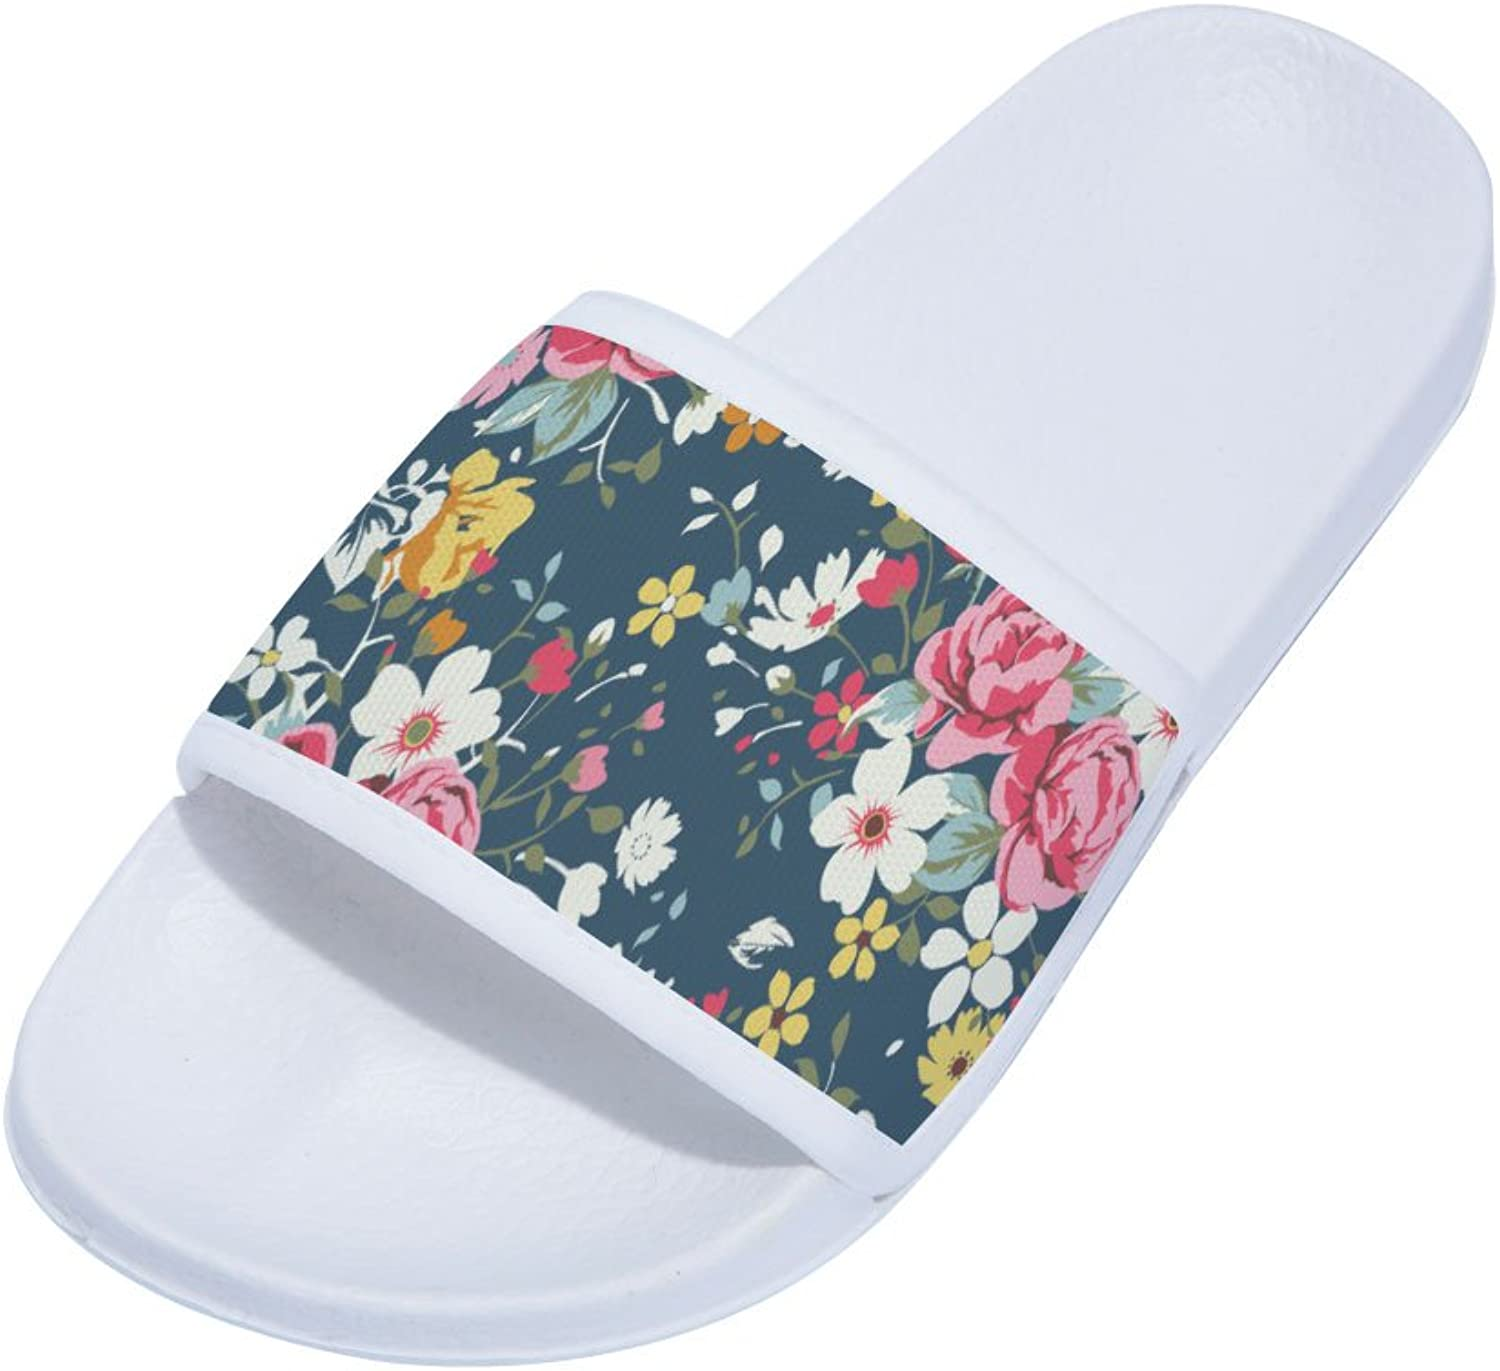 Buteri Flowers Slippers Quick-Drying Non-Slip Slippers for Womens